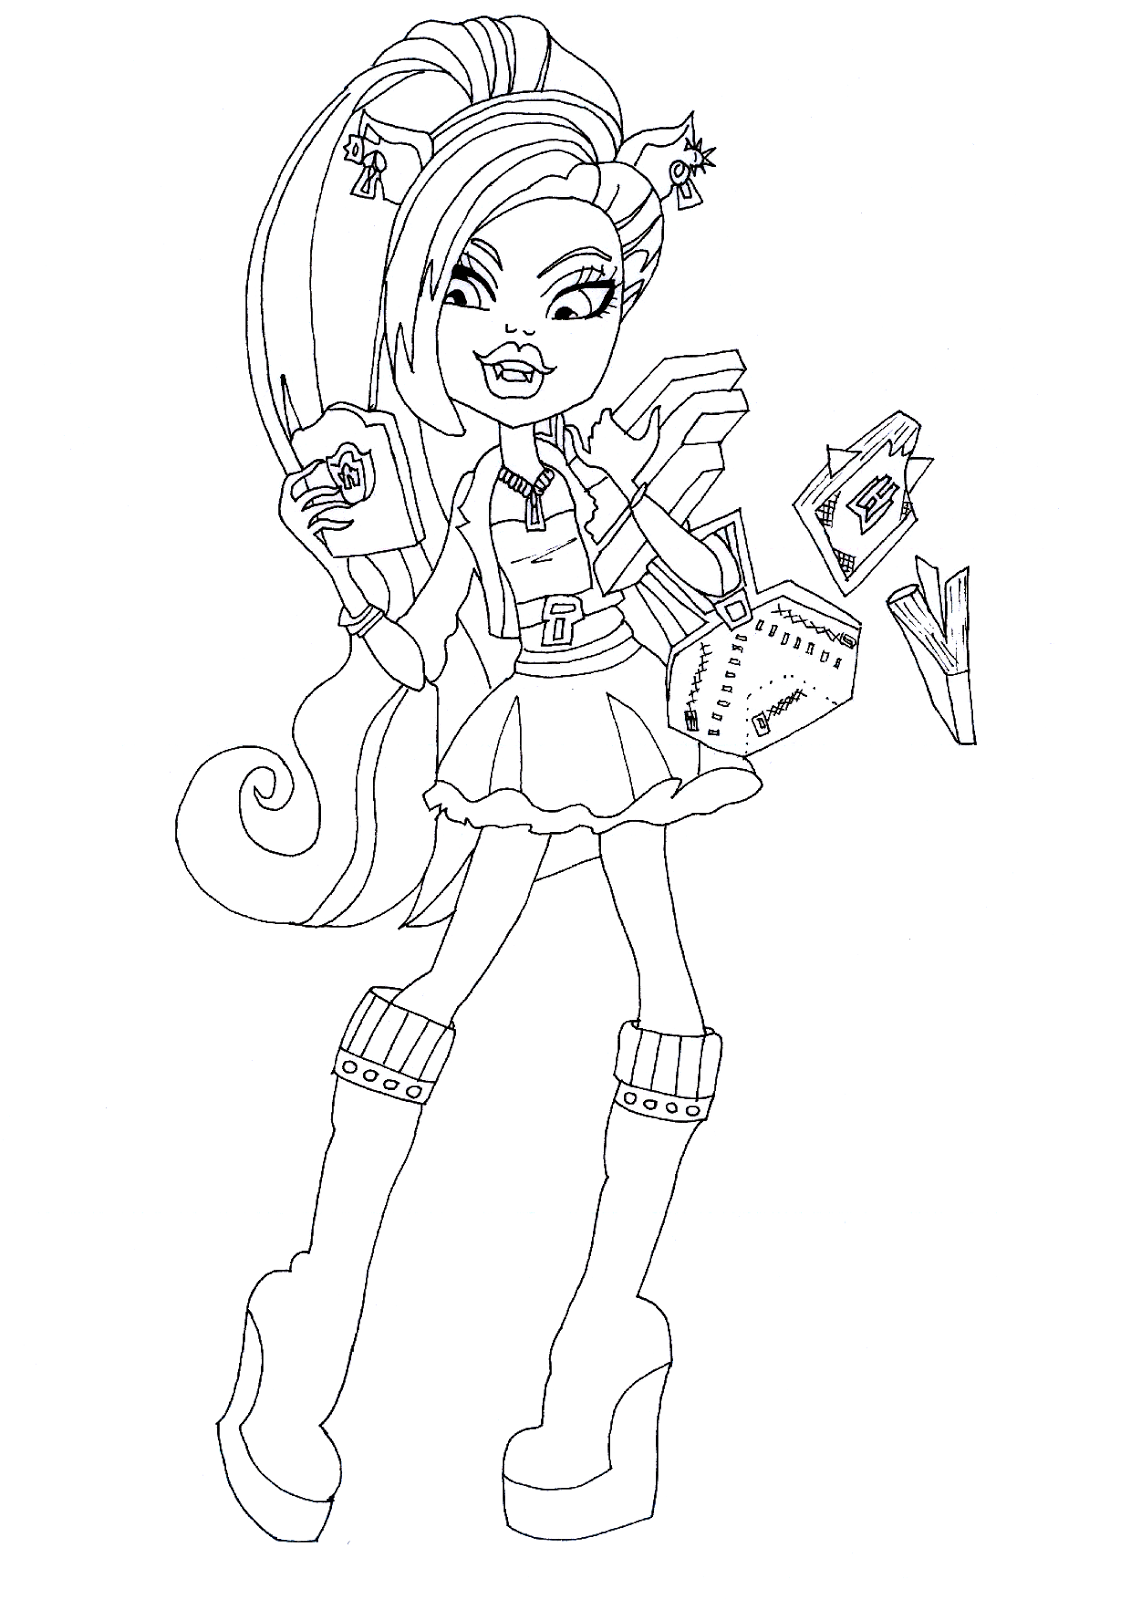 Free Printable Monster High Coloring Pages: October 2013